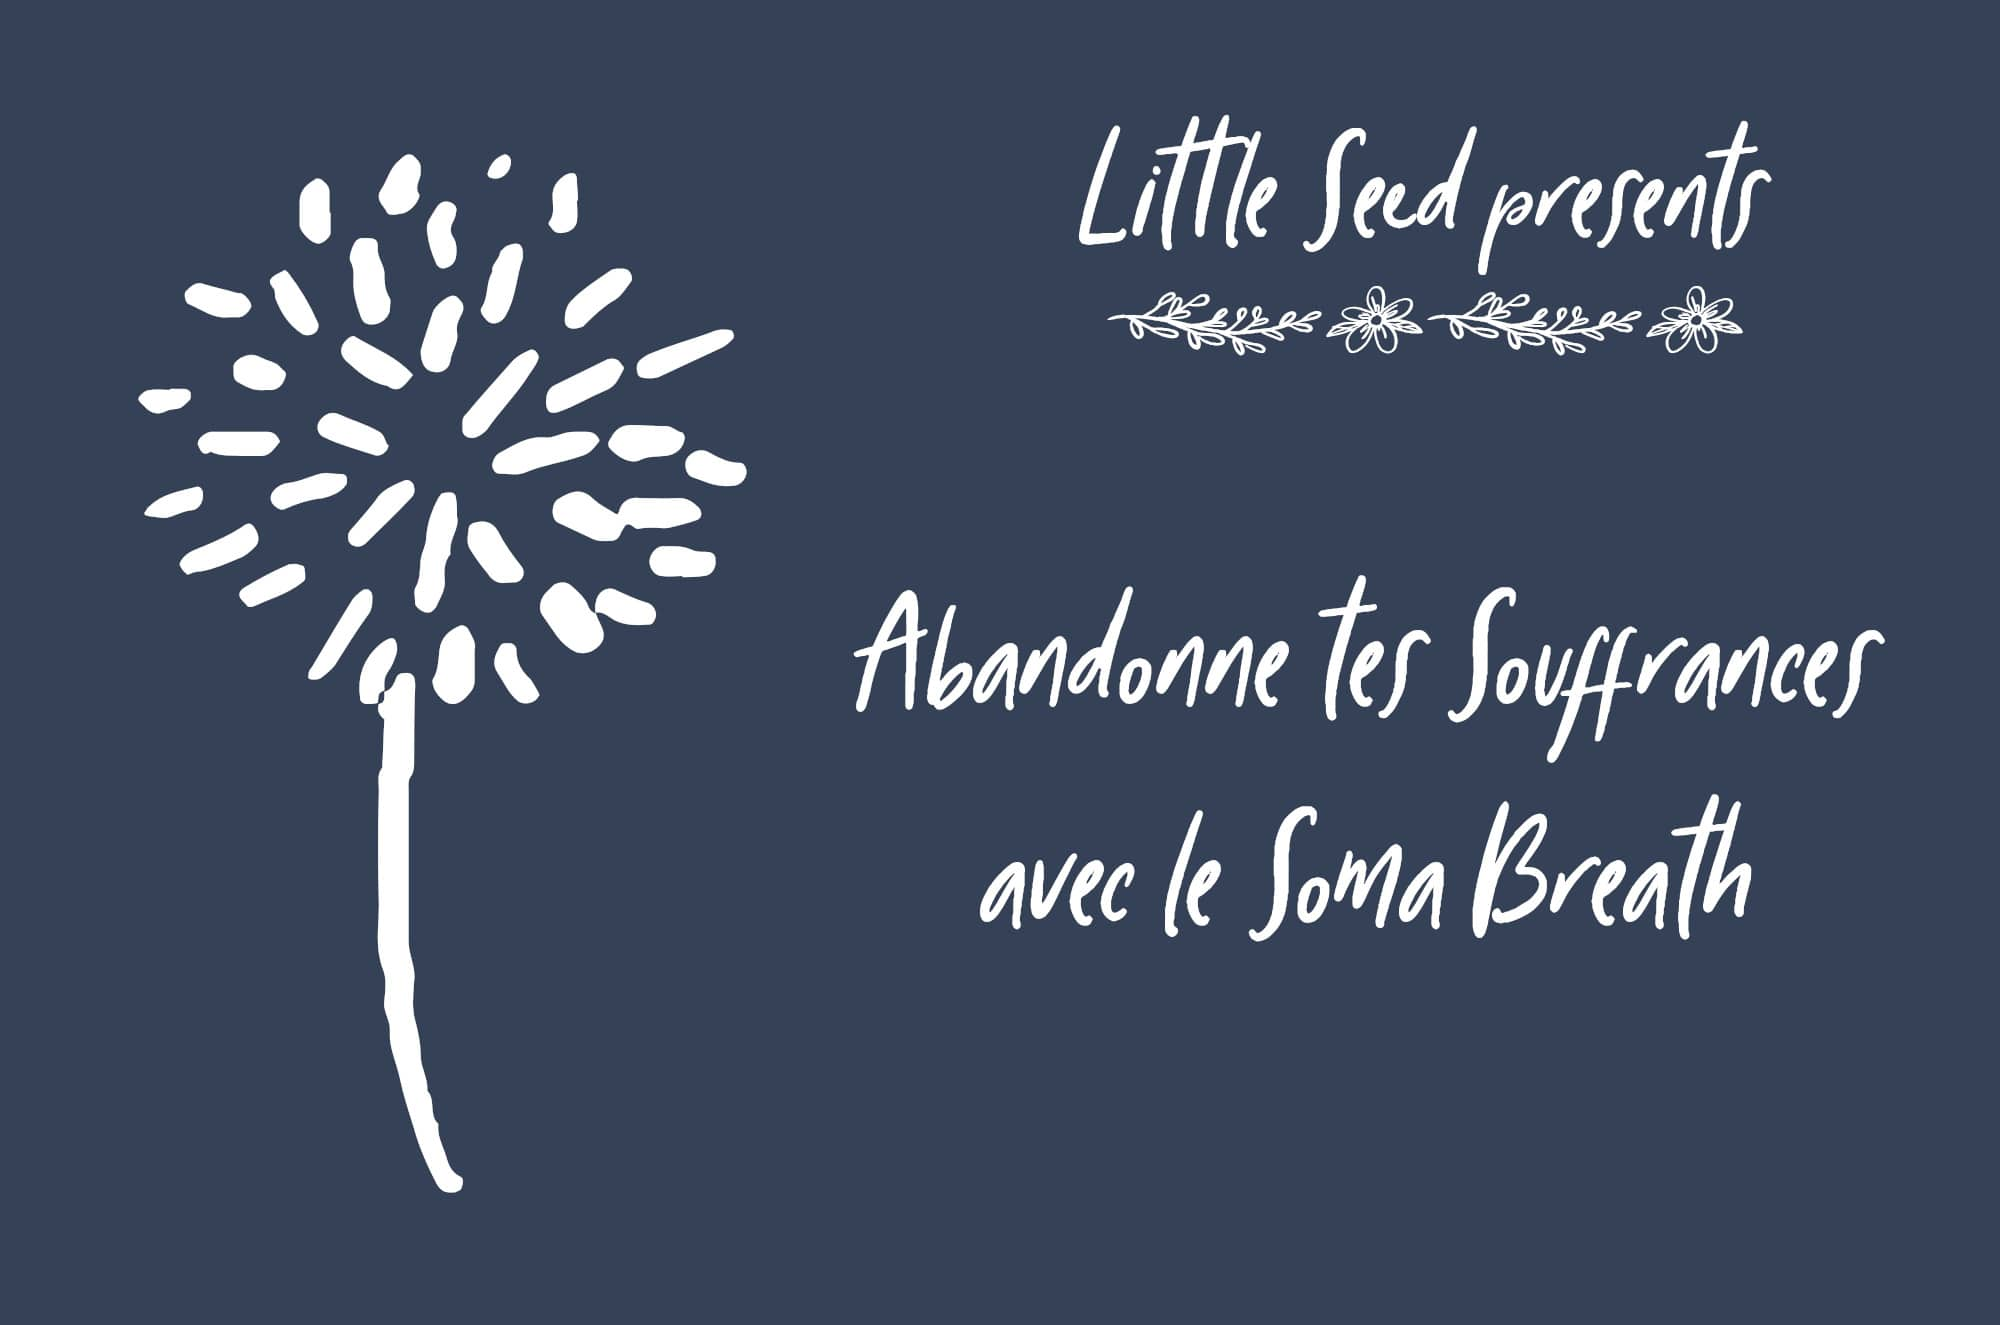 Abandonne tes souffrances : Little Seed by Chantal & David : Yoga, Soma Breath, Nutrition